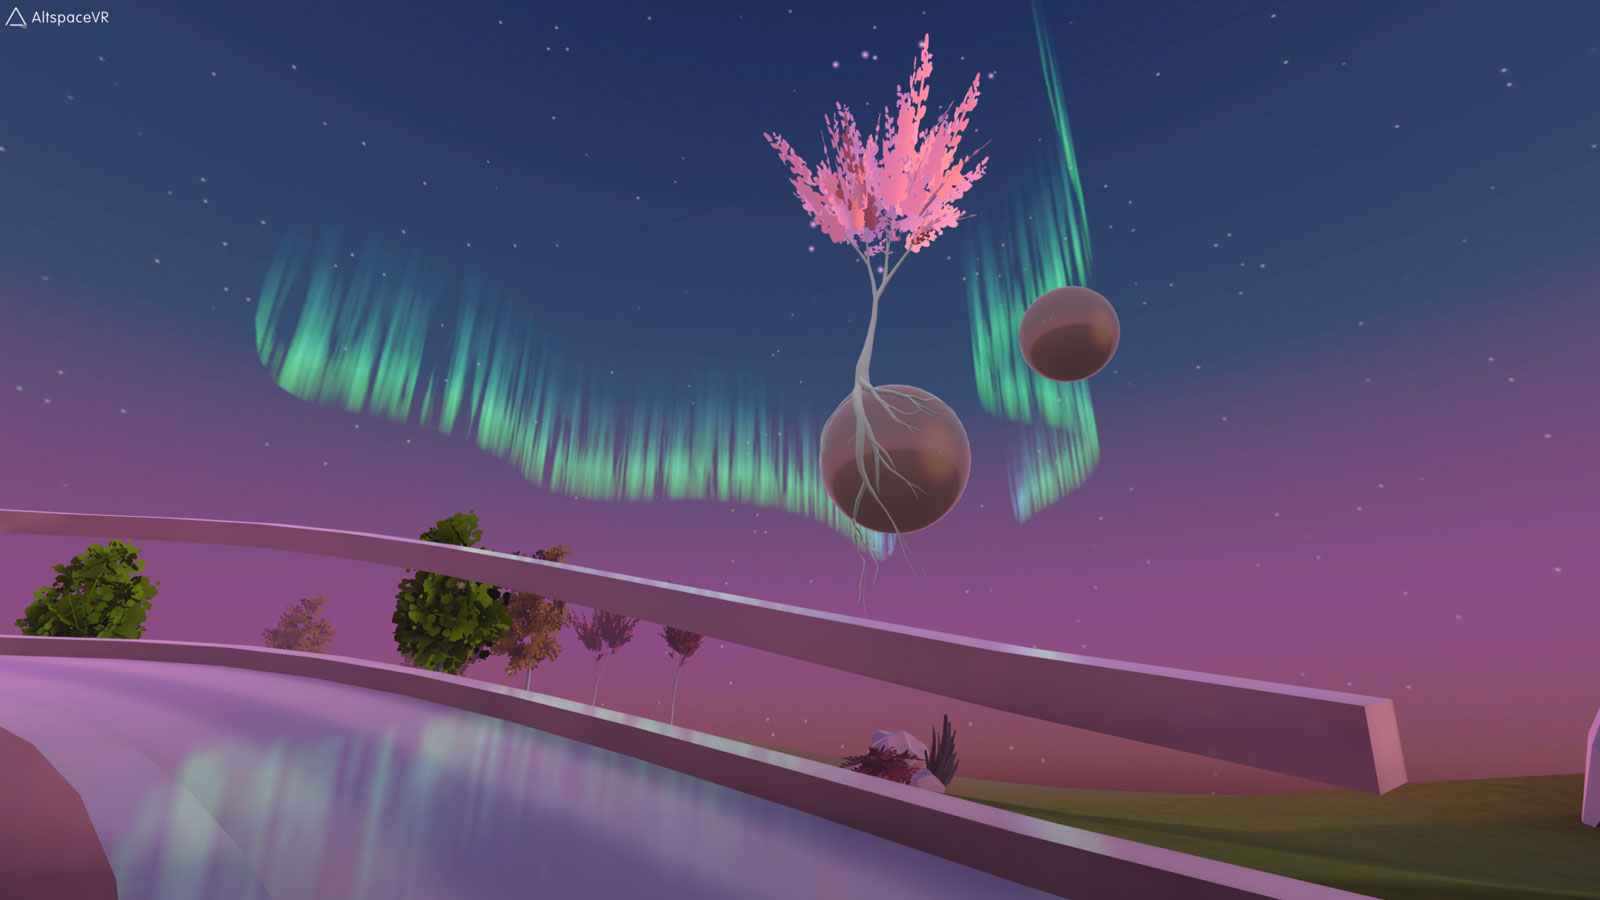 Virtual reality landscape from AltspaceVR. A tree with pink leaves is growing from a sphere hanging in the air, with Aurora Borealis in the background.